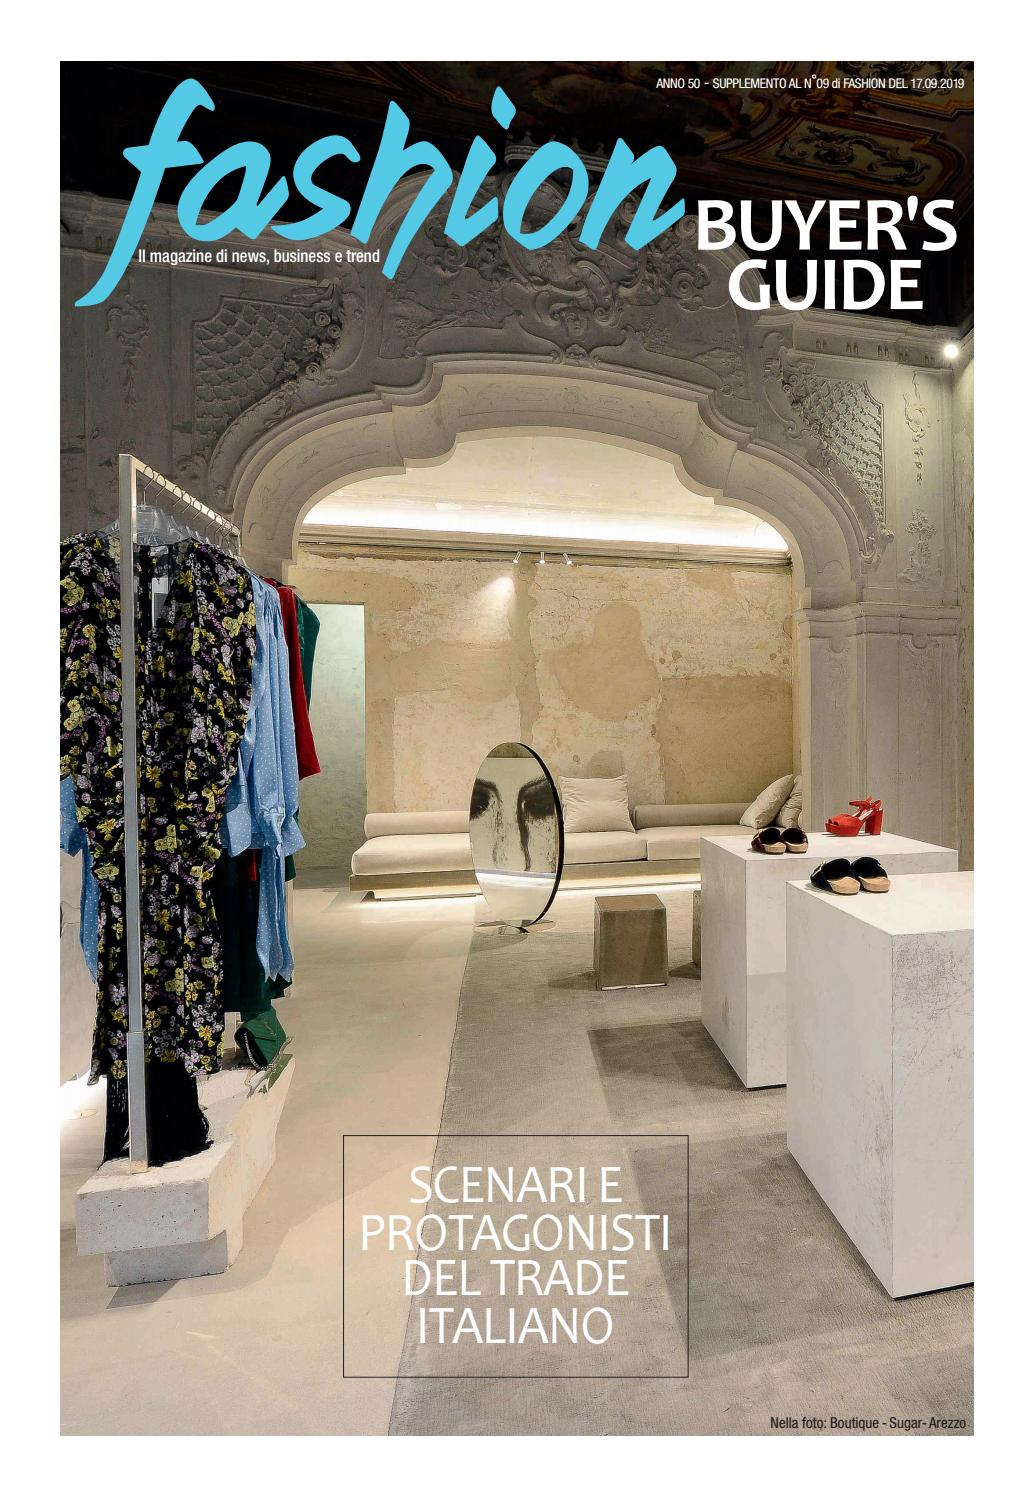 BUYER'S GUIDE SETTEMBRE 2019 by Fashionmagazine issuu